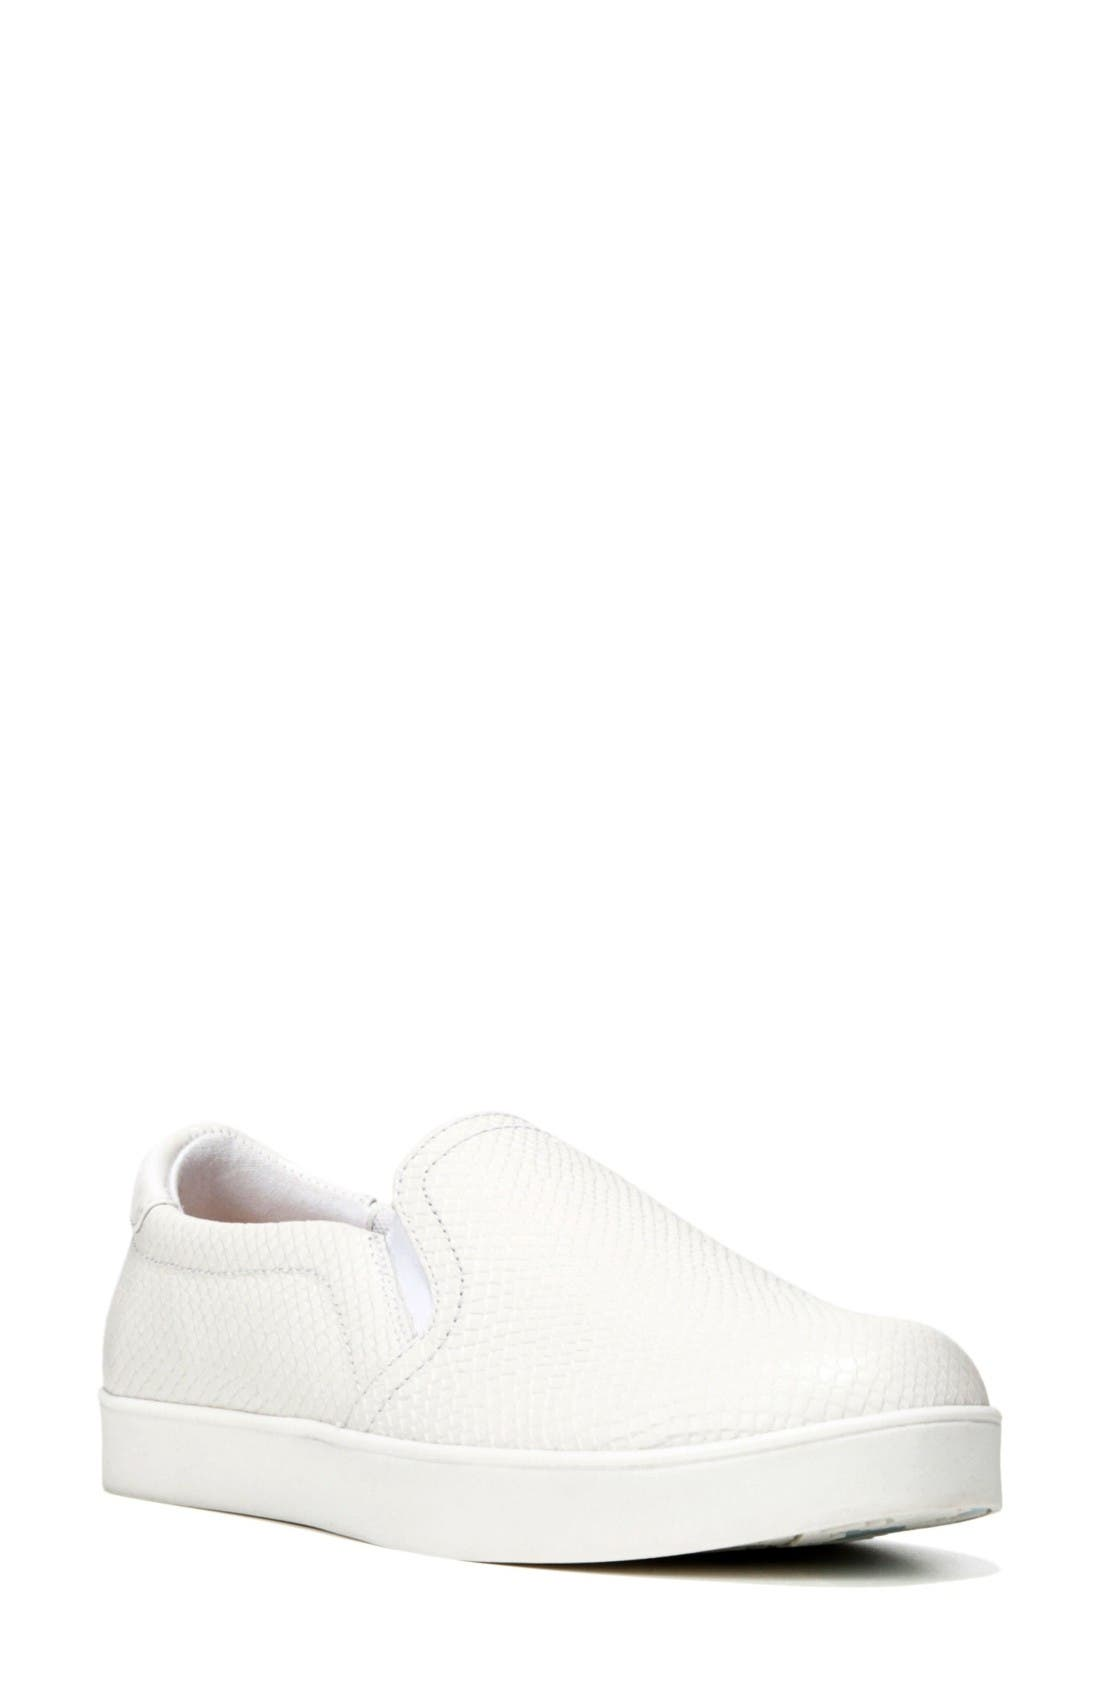 Alternate Image 1 Selected - Dr. Scholl's Original Collection 'Scout' Slip On Sneaker (Women)